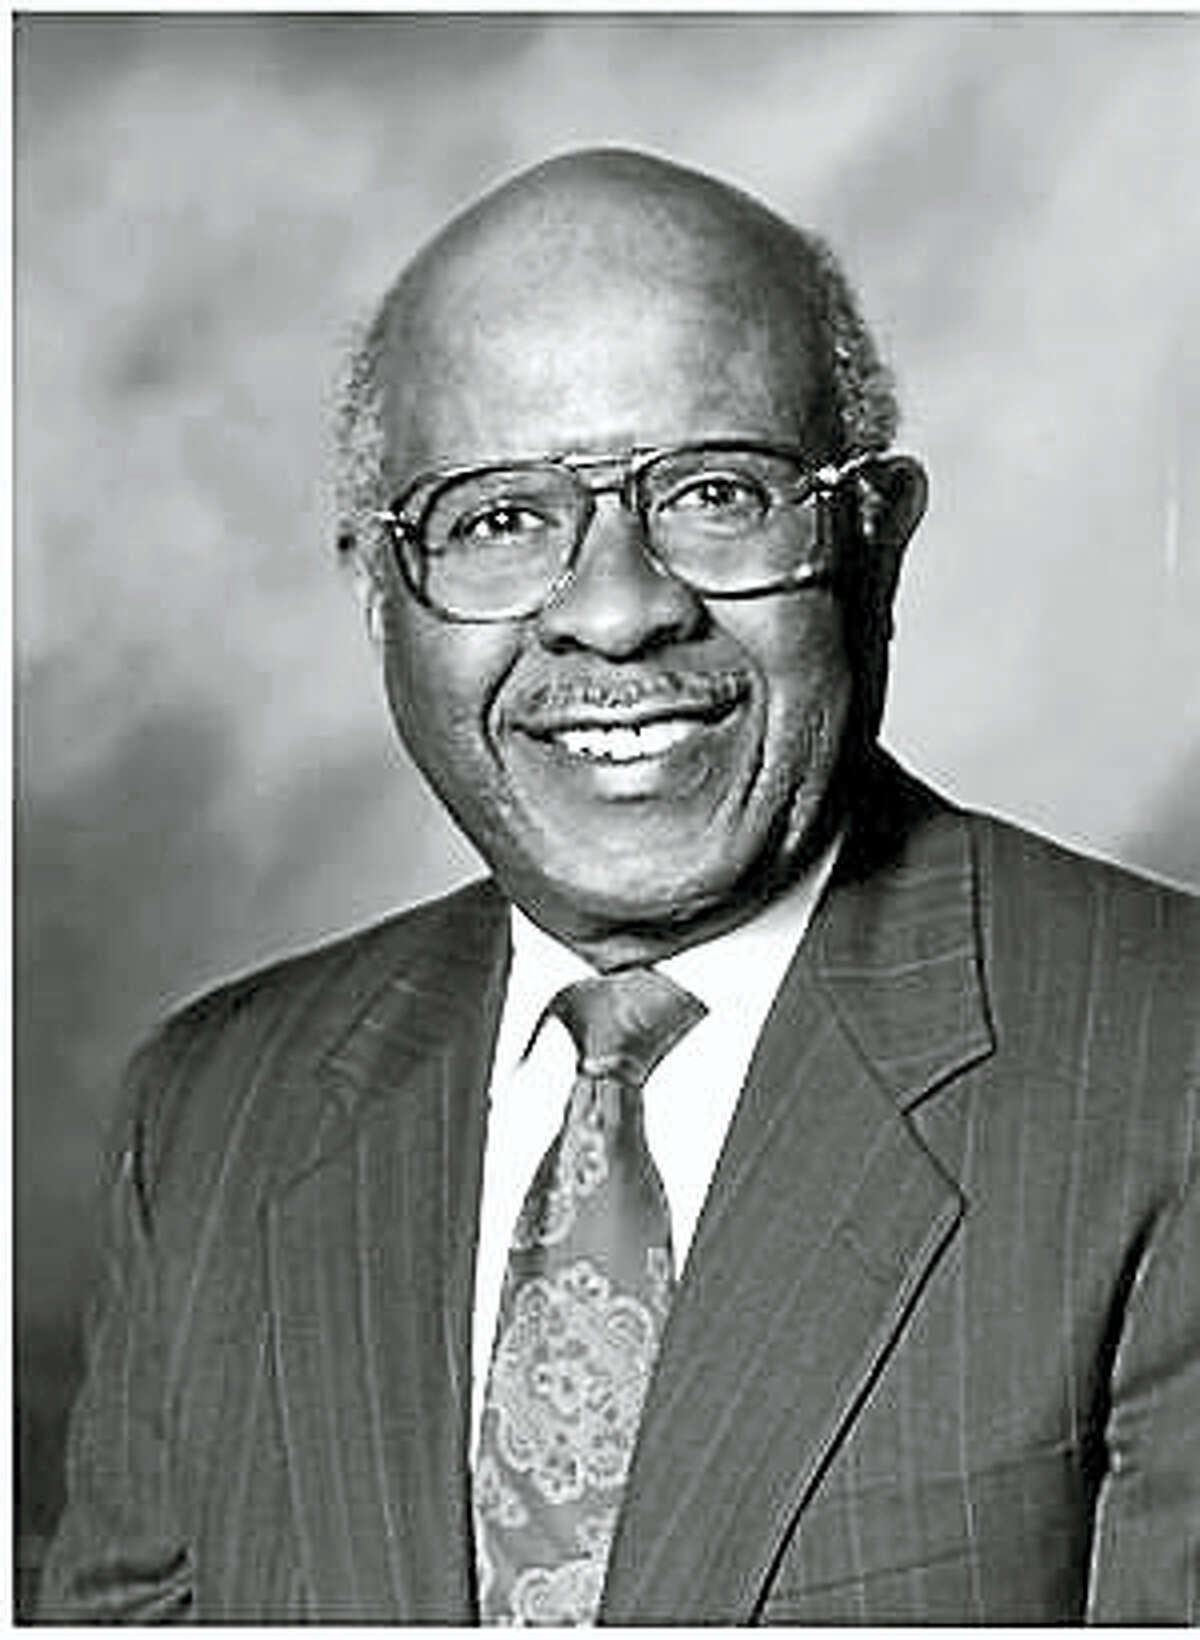 McRae was the first African American to chair the board of directors of Liberty Bank and founding director of the Liberty Bank Foundation.